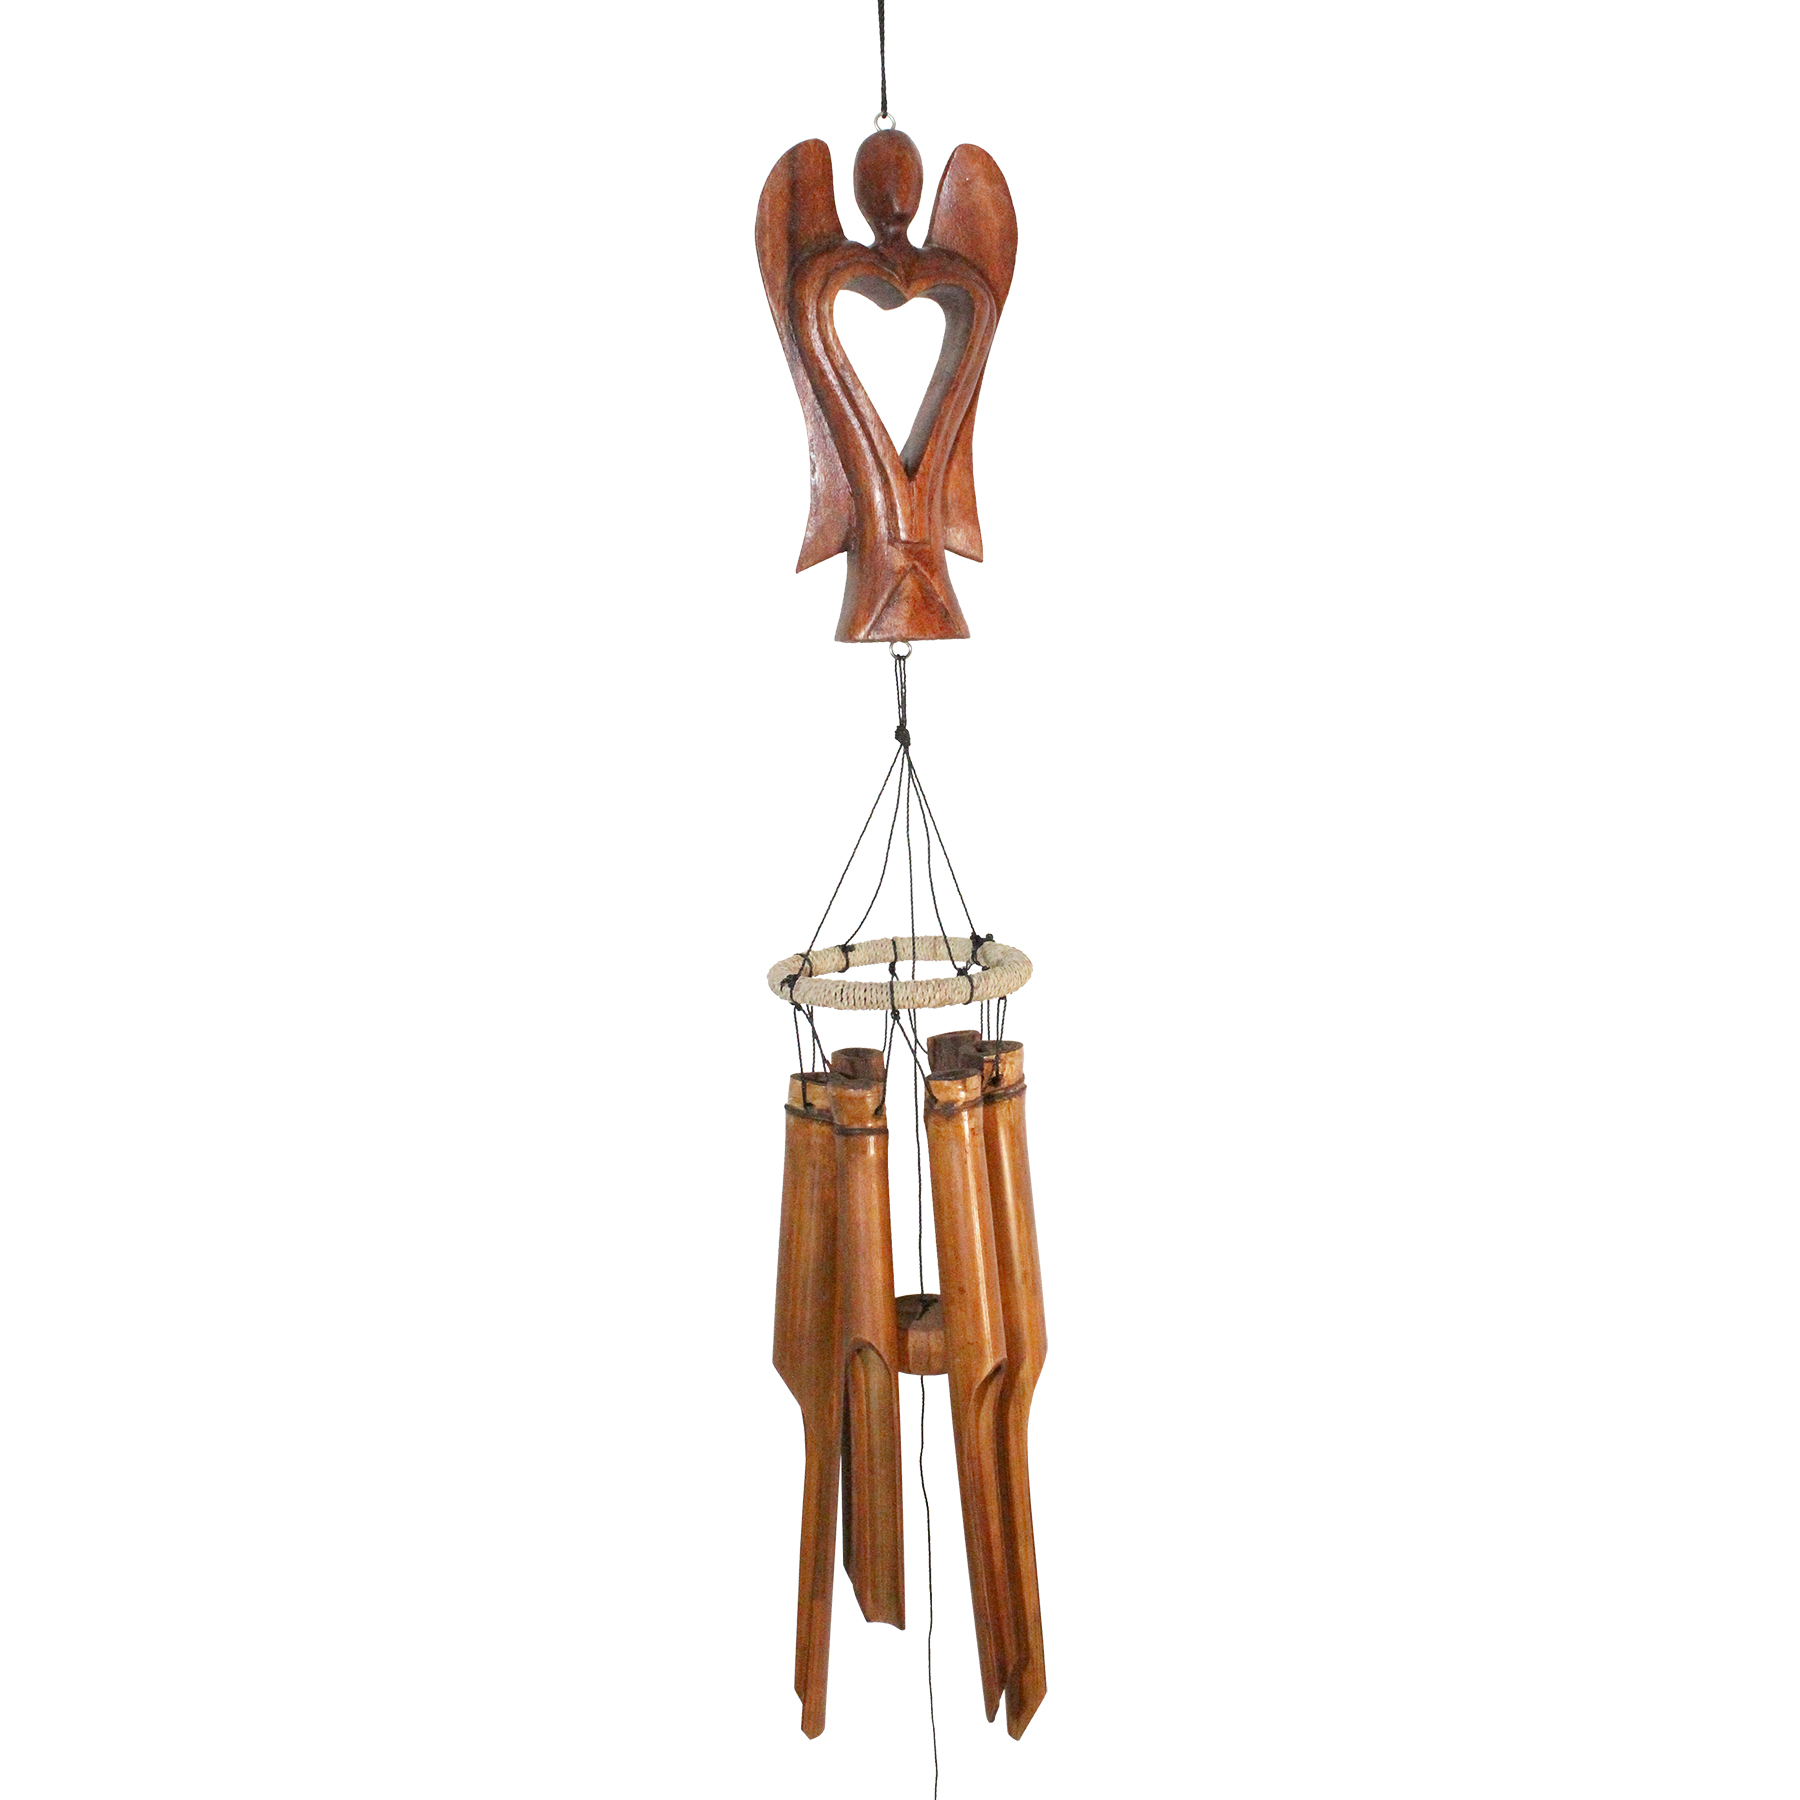 630A - Antique Angel Bamboo Wind Chime